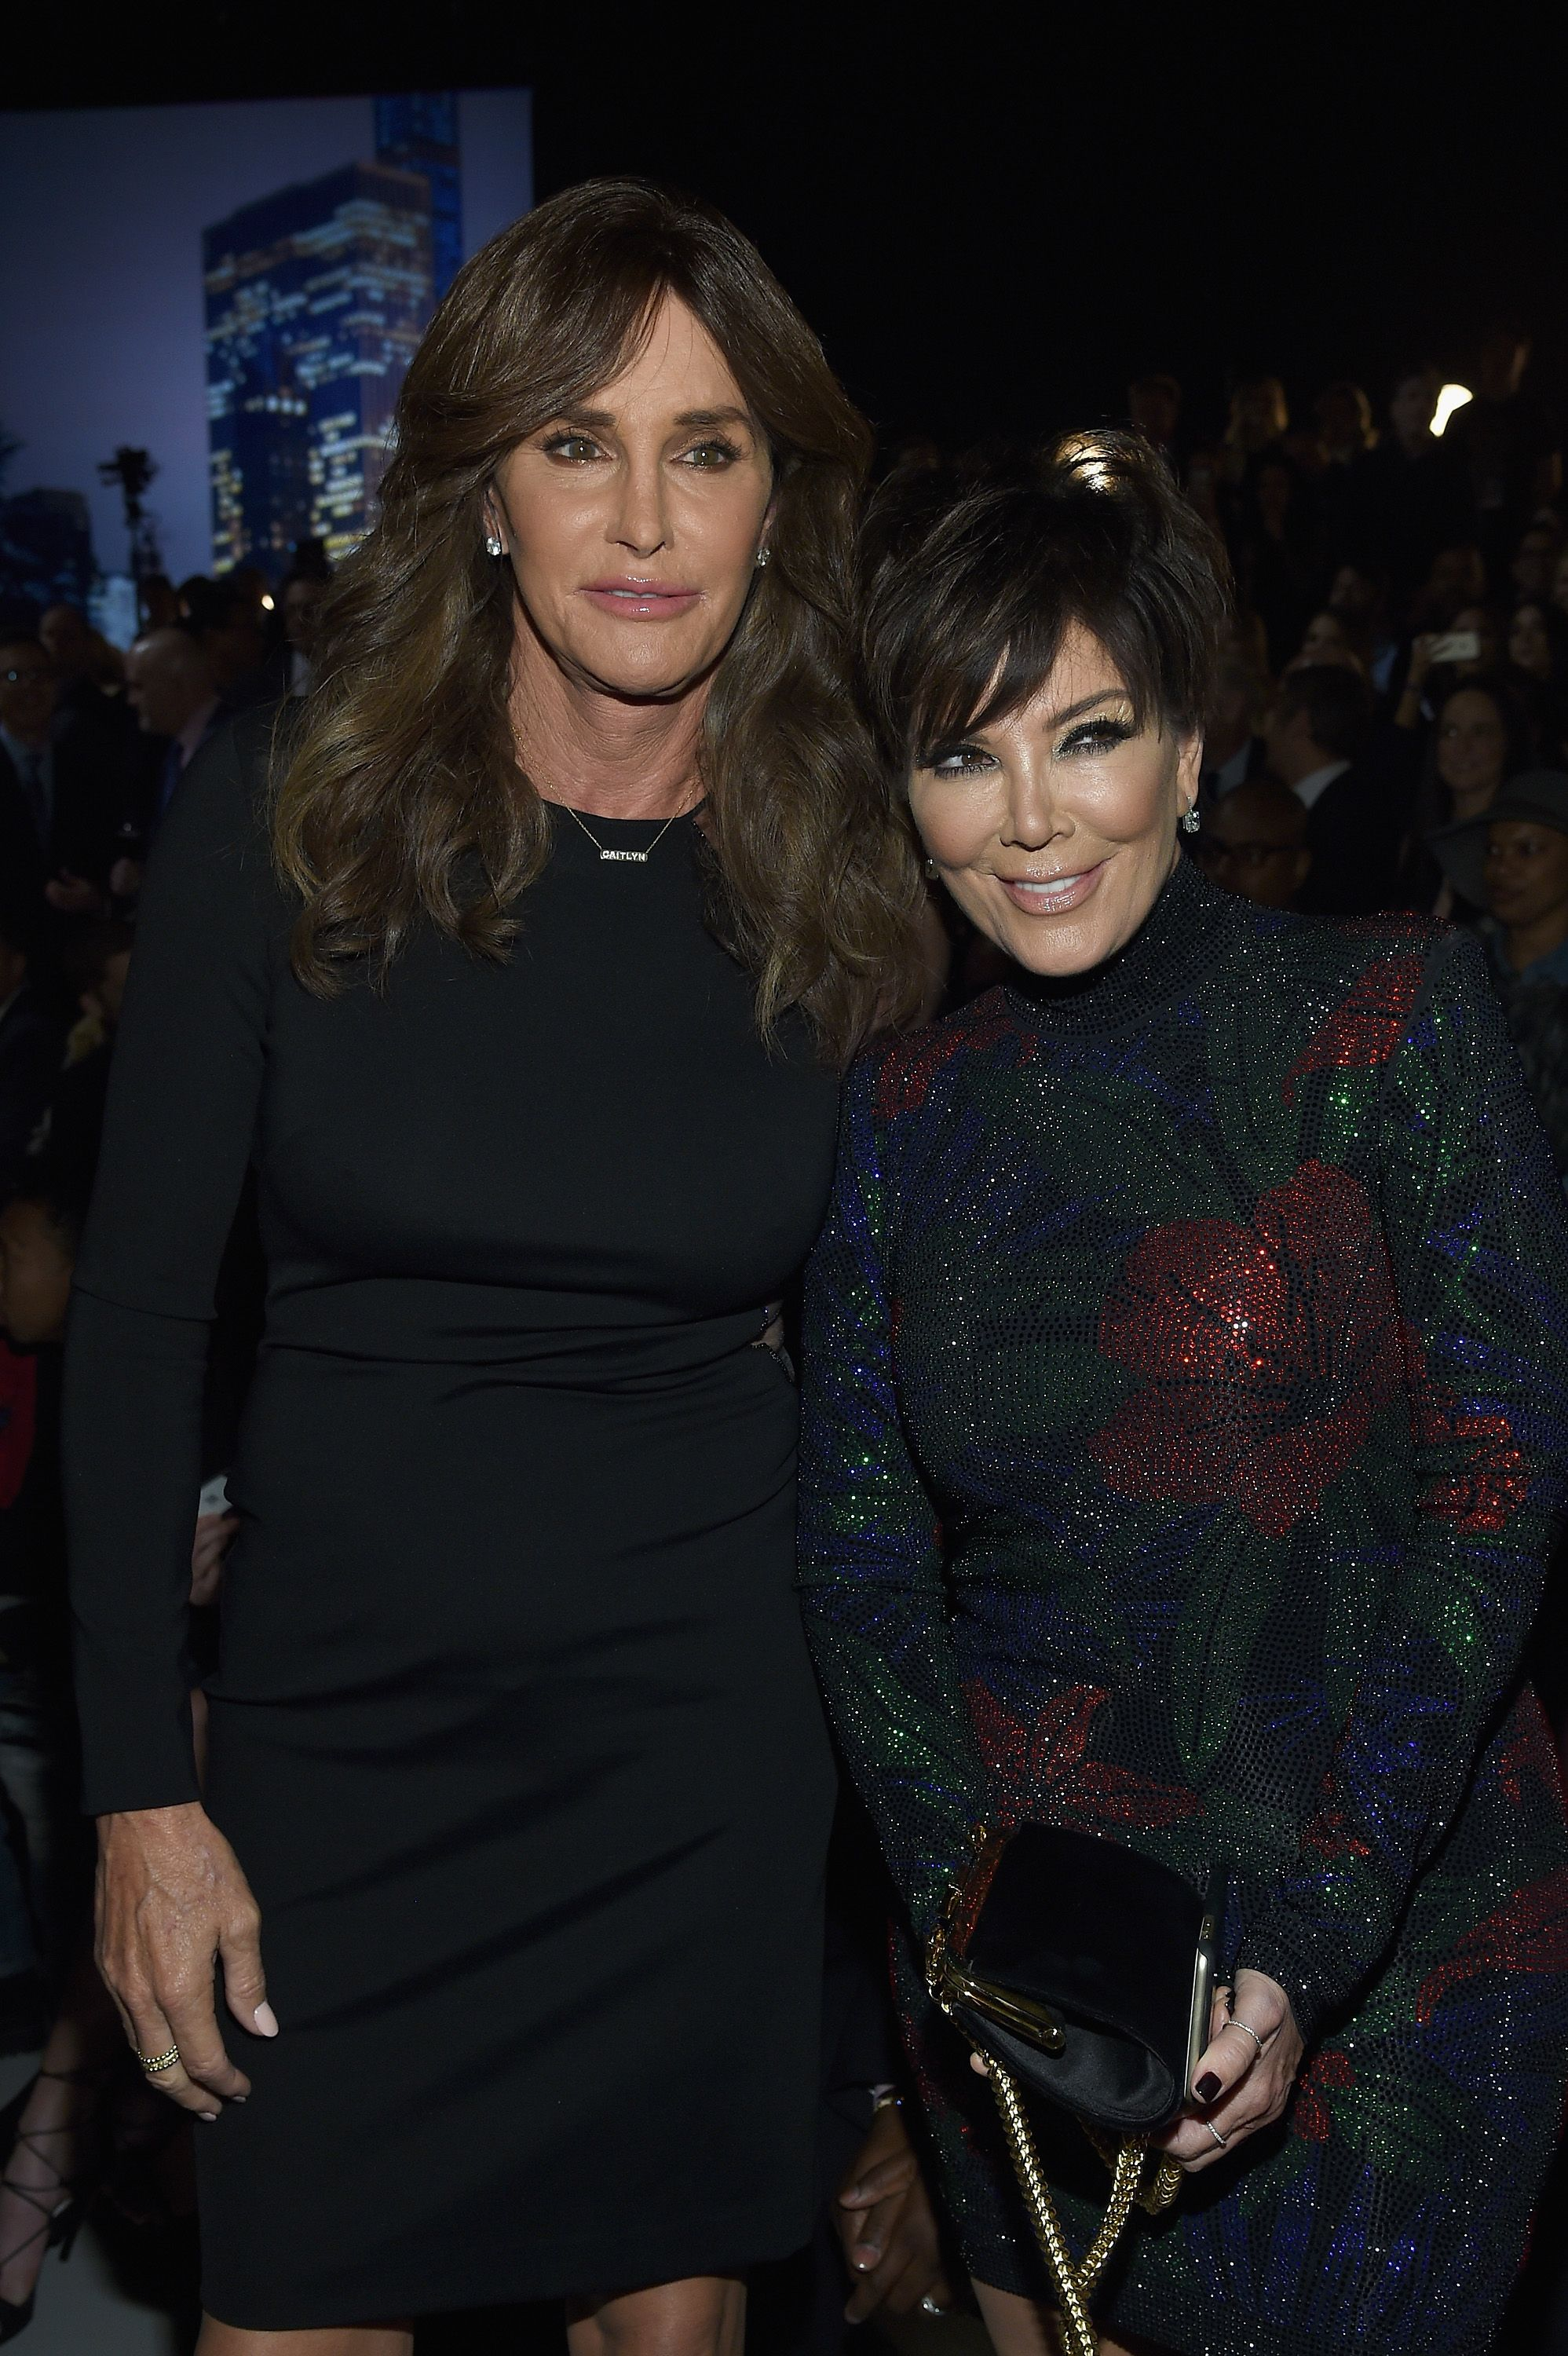 Caitlyn Jenner and Kris Jenner at the 2015 Victoria's Secret Fashion Show at Lexington Avenue Armory on November 10, 2015 | Photo: Getty Images